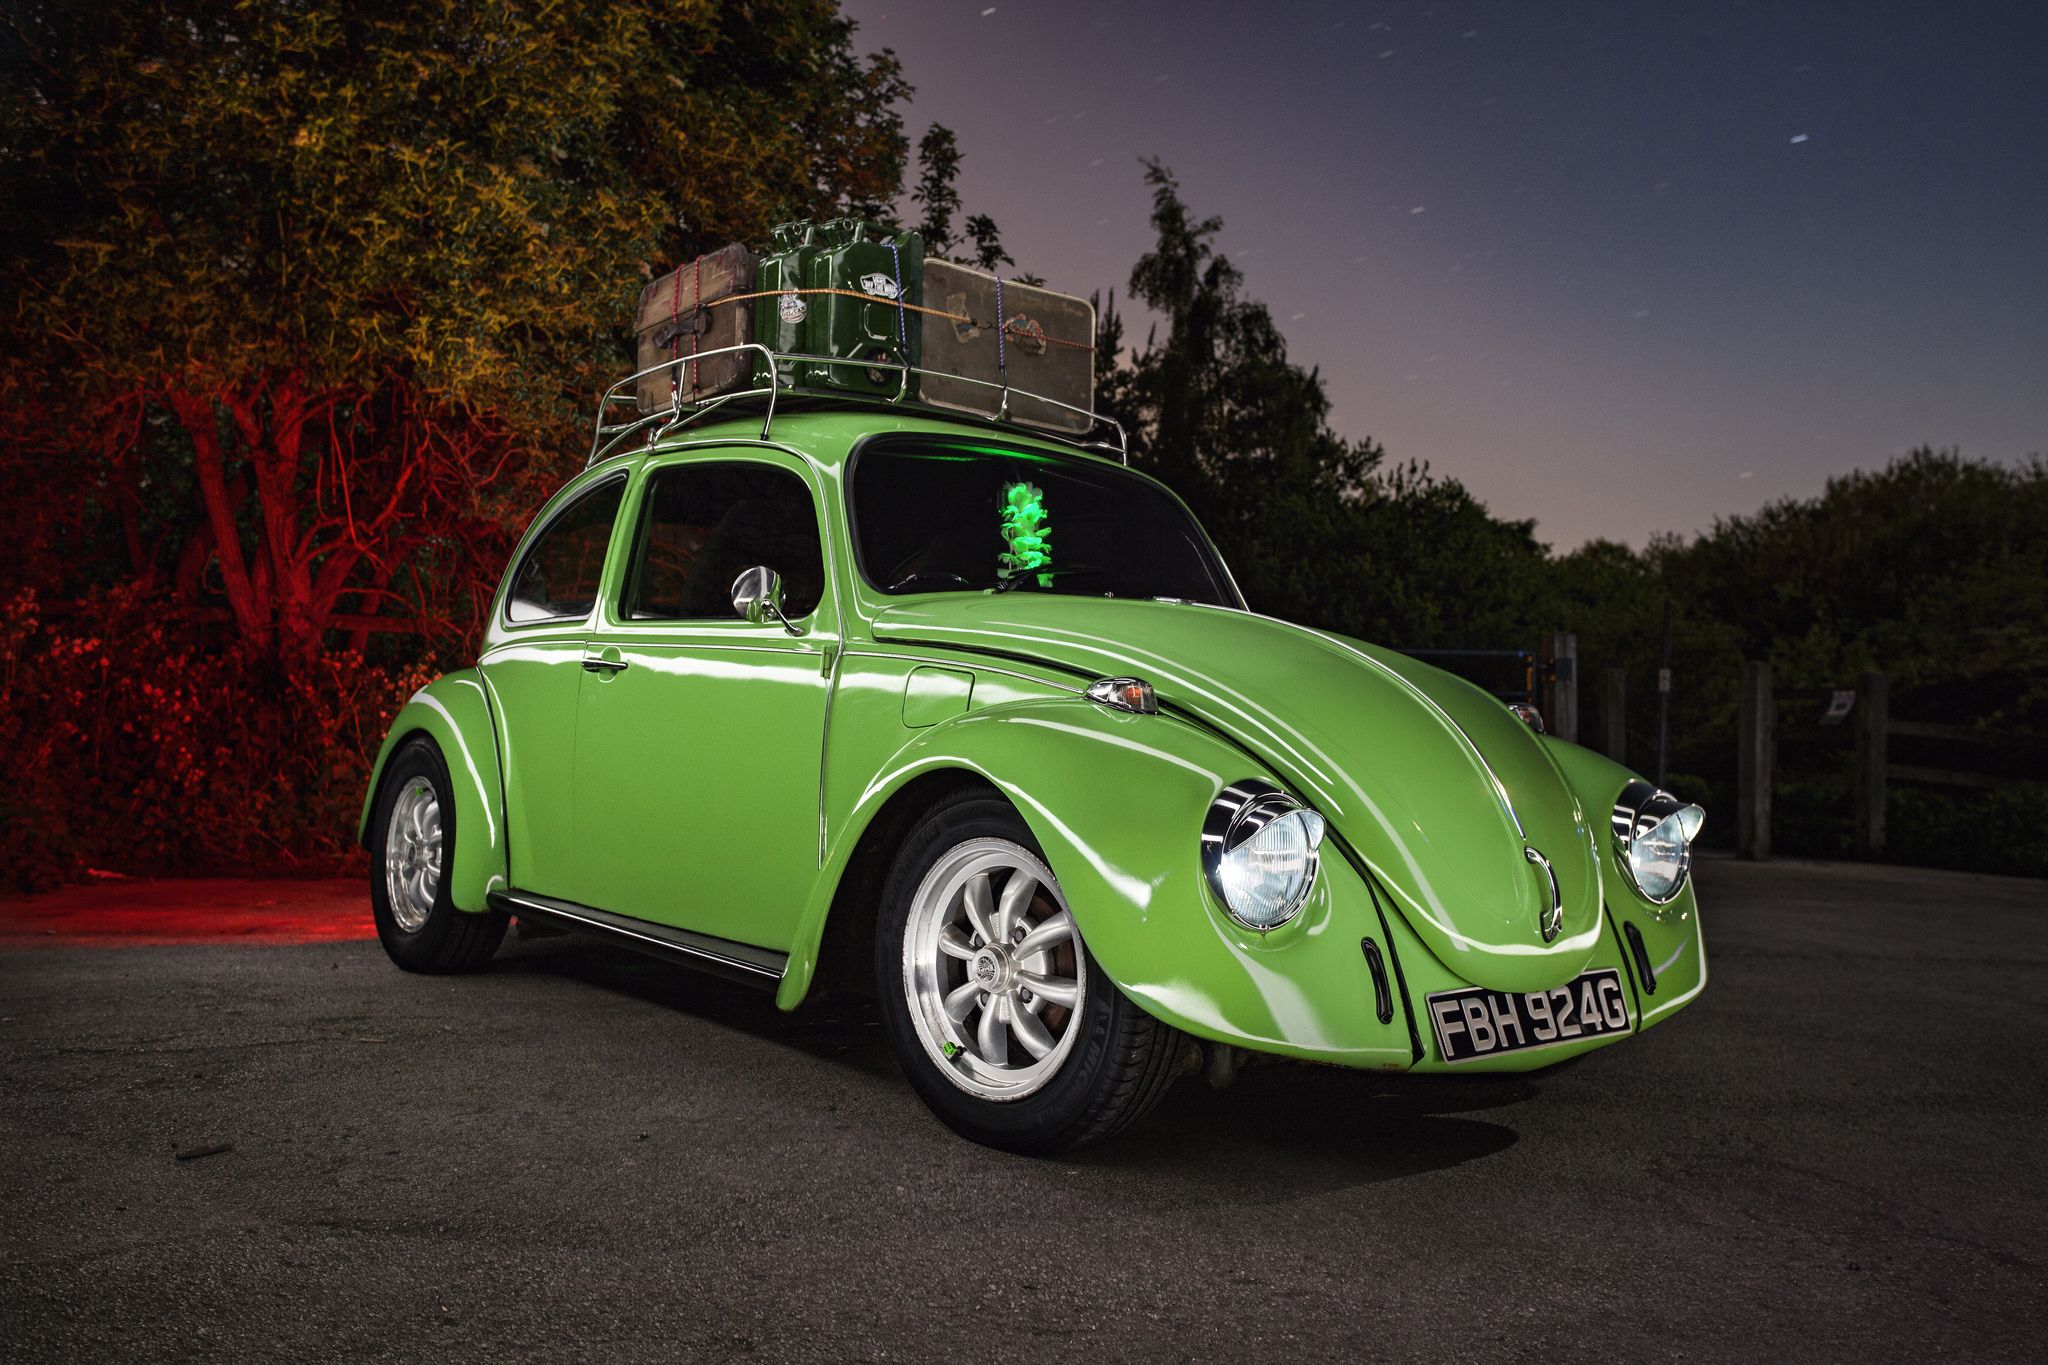 1968 Vw Beetle Vw Beetles Roof Rack Beetle